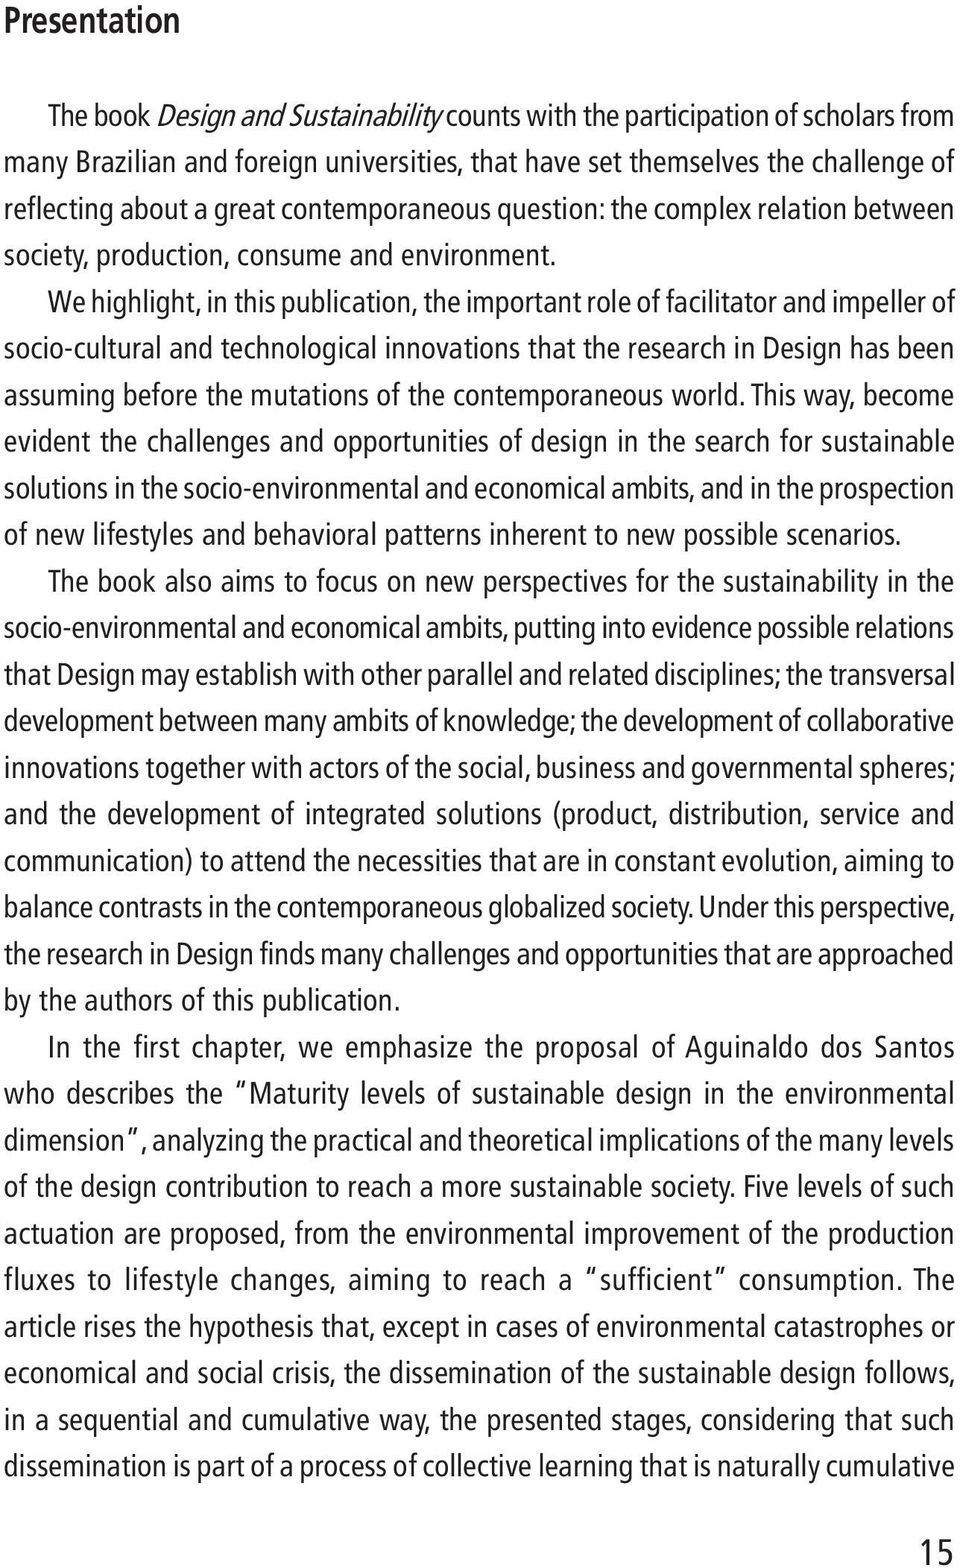 We highlight, in this publication, the important role offacilitator and impeller of socio-cultural and technological innovations that the research in Design has been assuming before the mutations of